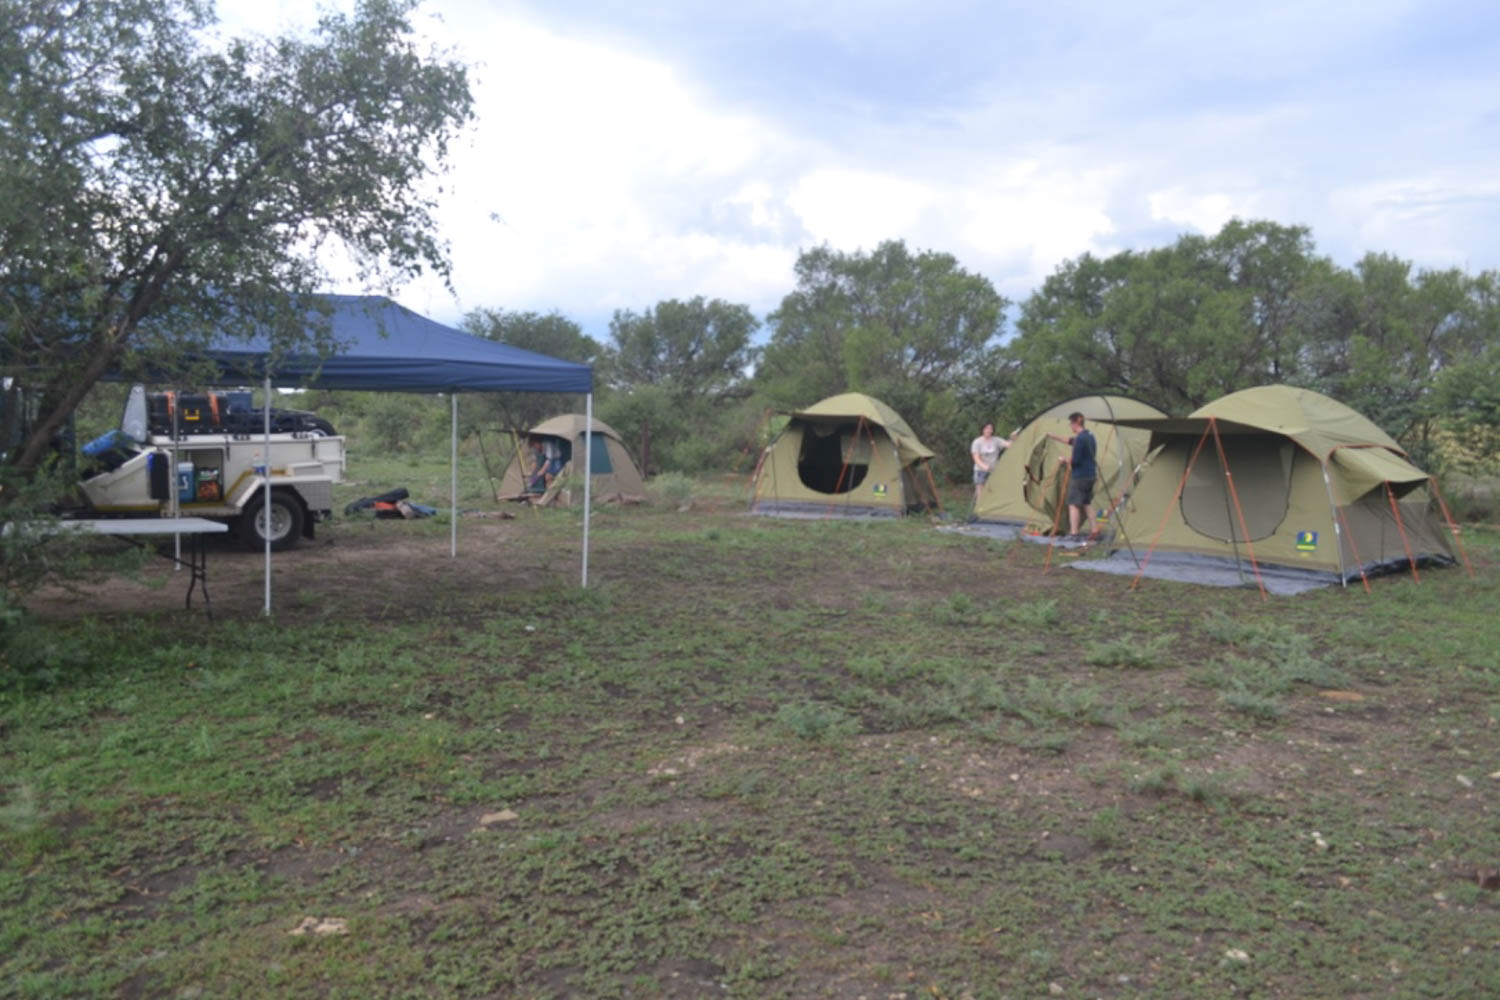 Well organised and comfortable camping with South Africa Overland 4x4 Tours